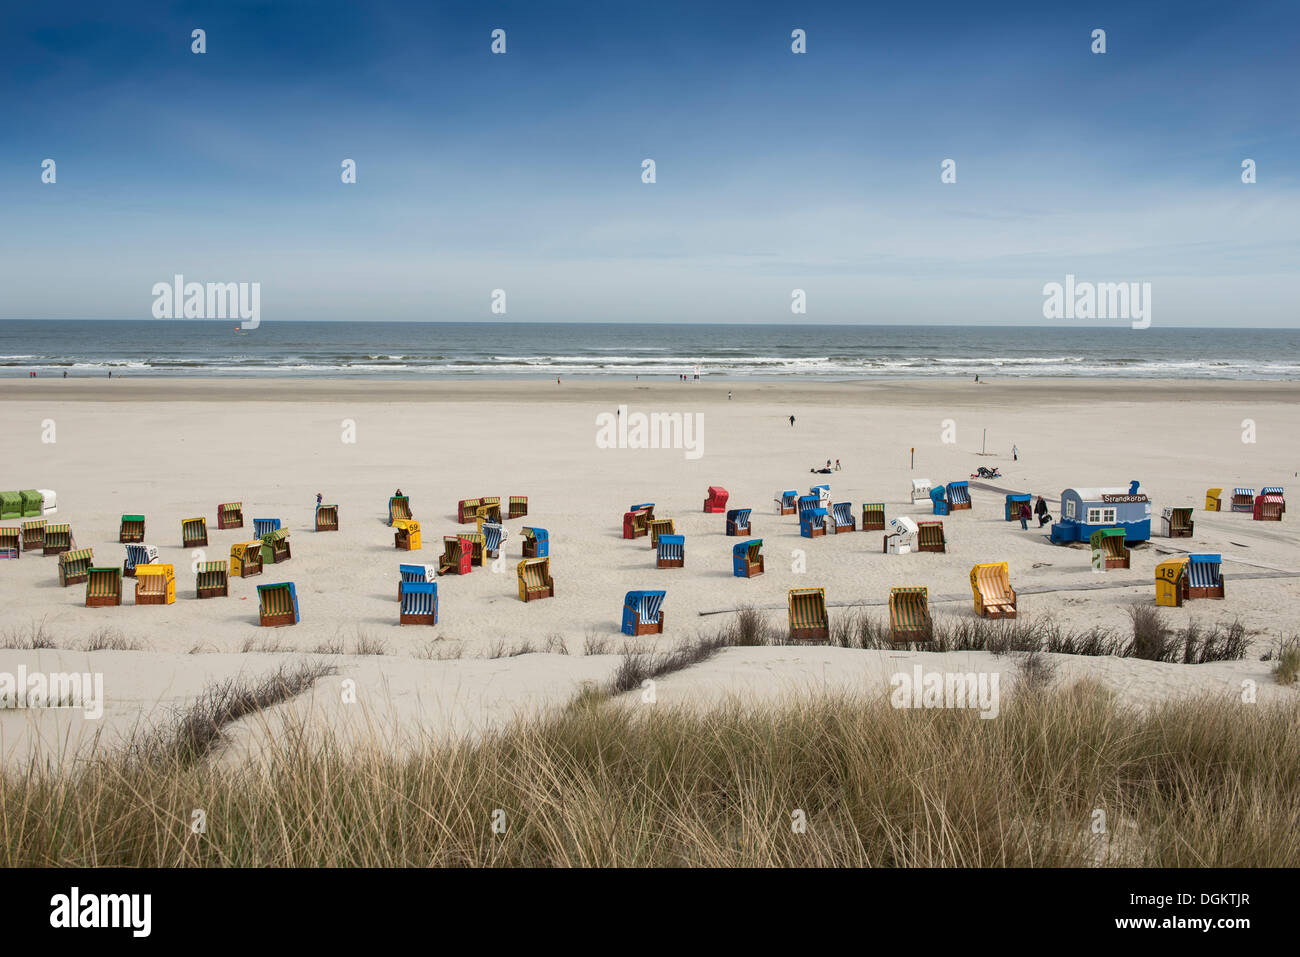 Roofed wicker beach chairs on the beach of Juist island, North Sea, Lower Saxony Wadden Sea, East Frisia, Lower - Stock Image